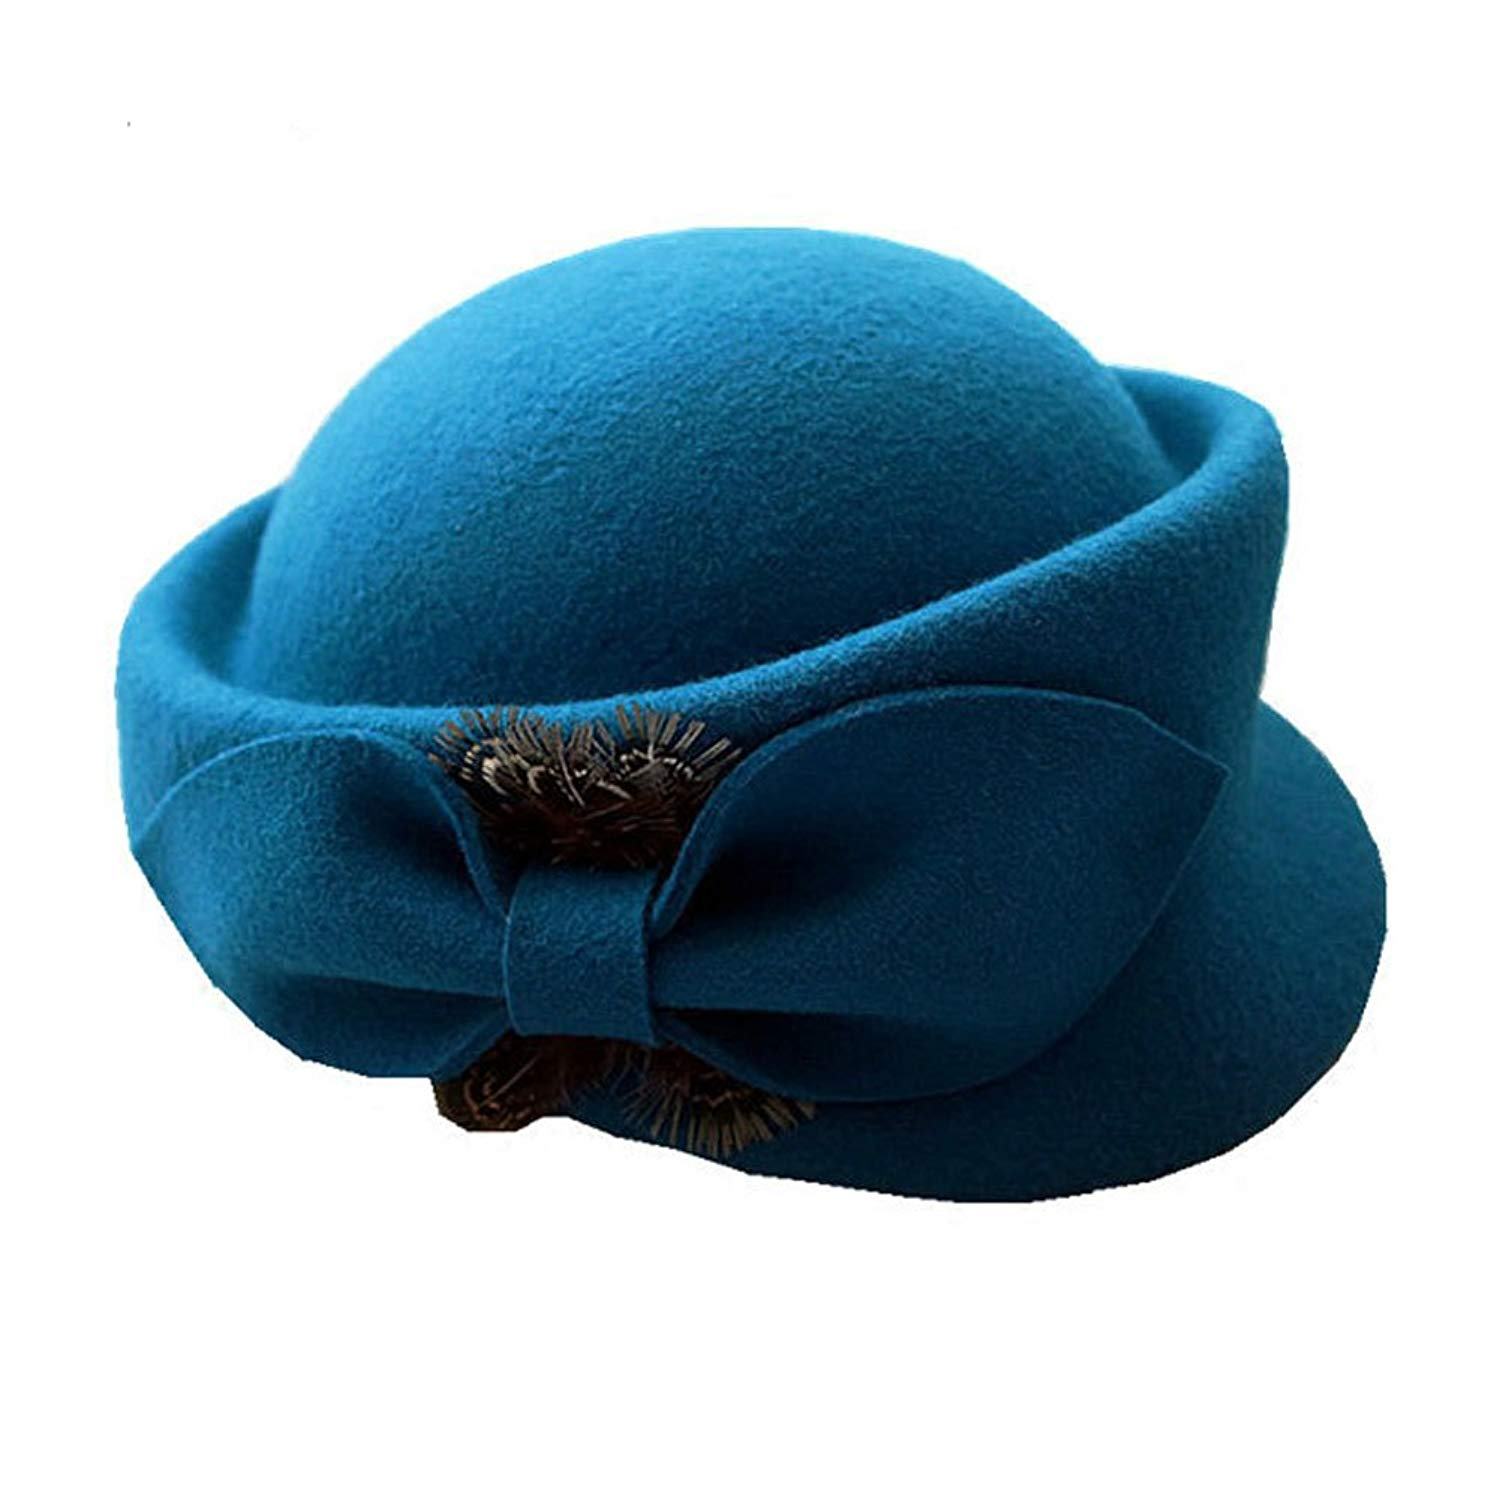 86f3cd2ab8f Get Quotations · Queenestar Feather Beret Hat Peacock Wool Pillbox Cap  Wedding Hat Stewardess Cap